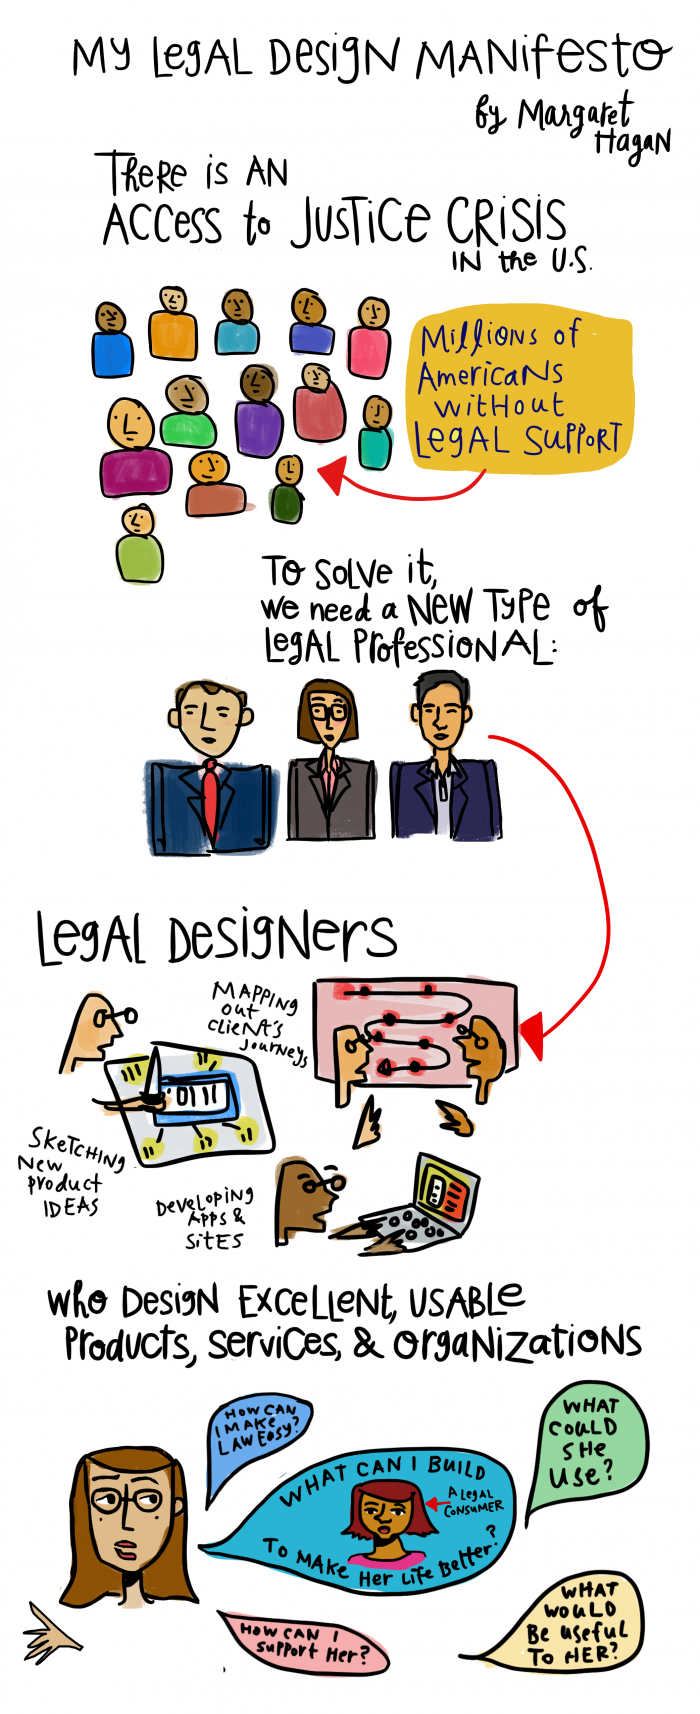 Legal Design Manifesto - by Margaret Hagan 1